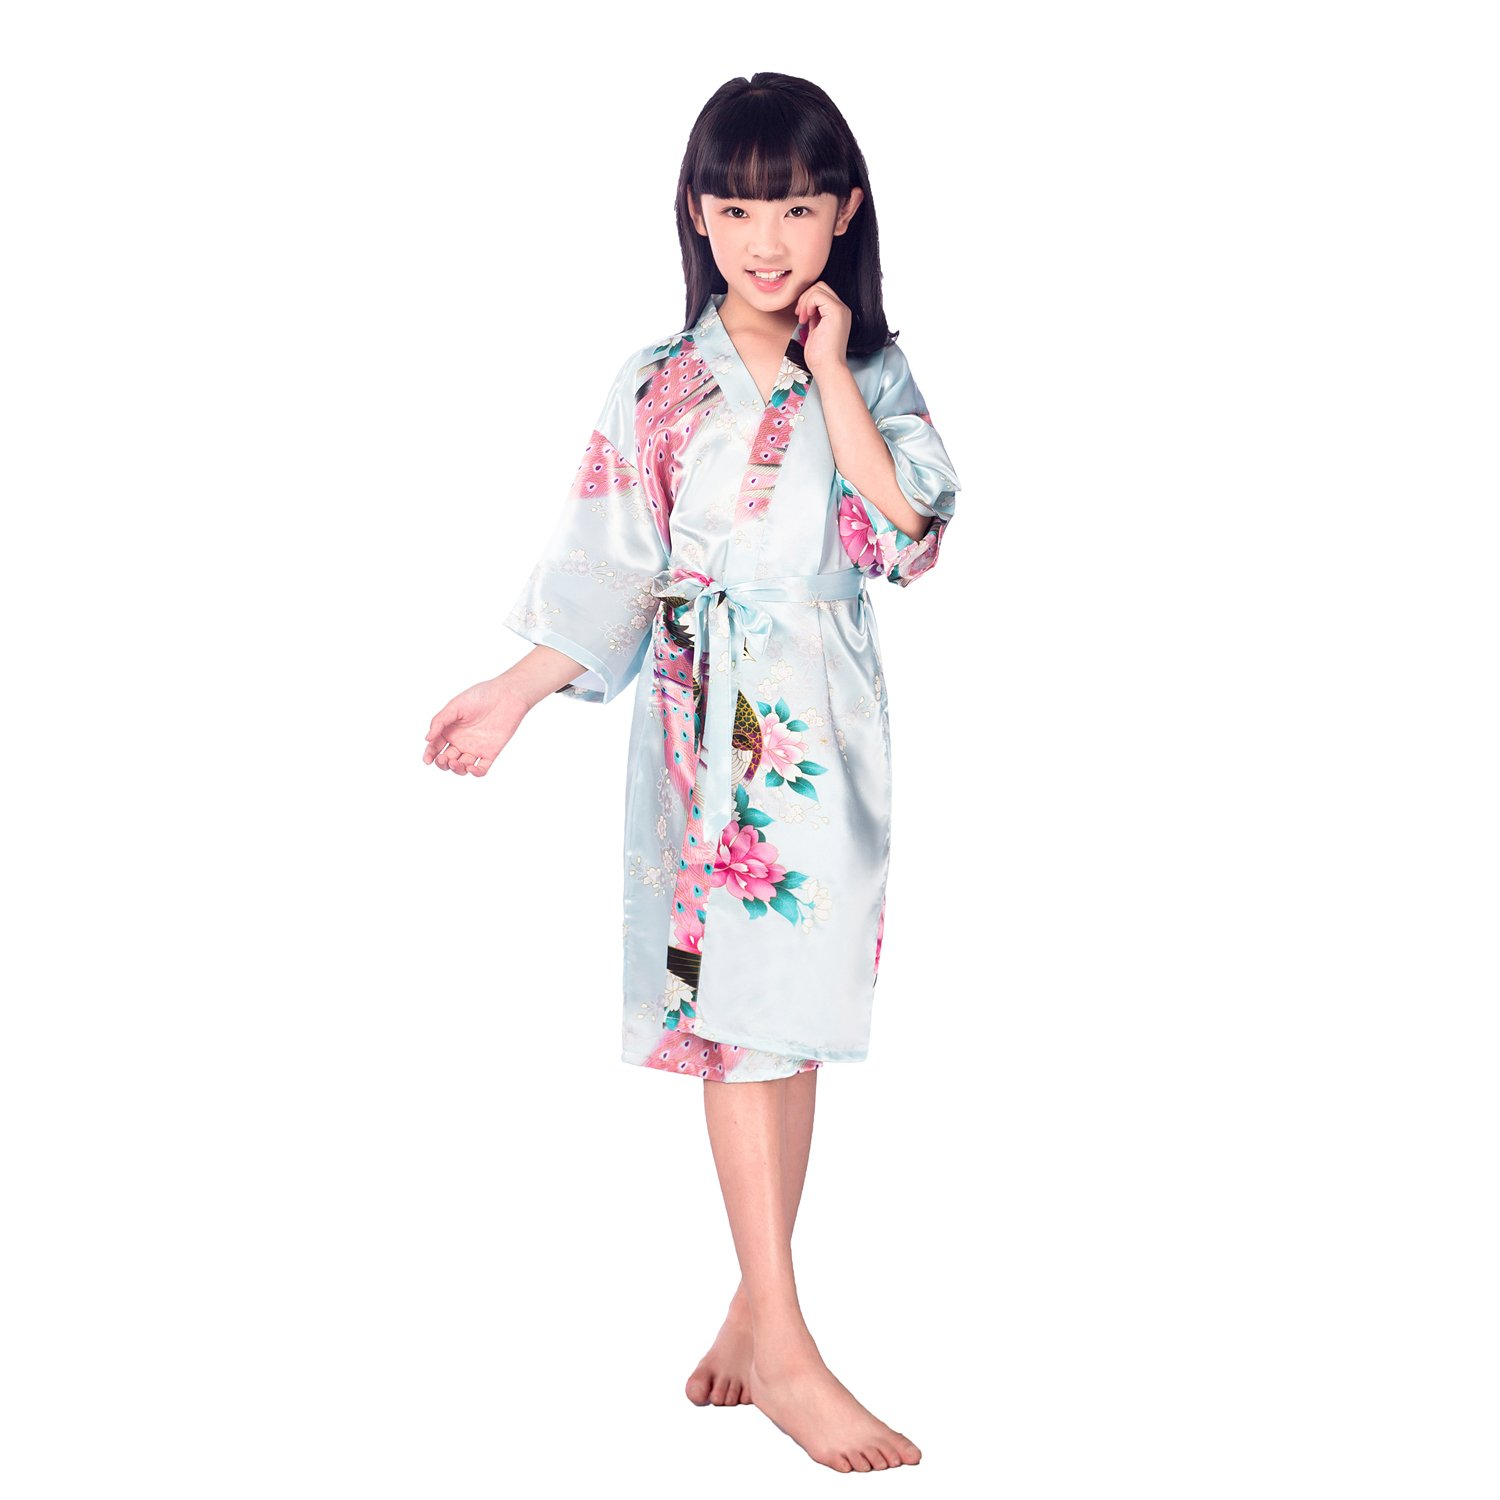 Loveylife Kids Peacock Bathrobe Girls Peacock Sleepwear Kids Robe for Girls